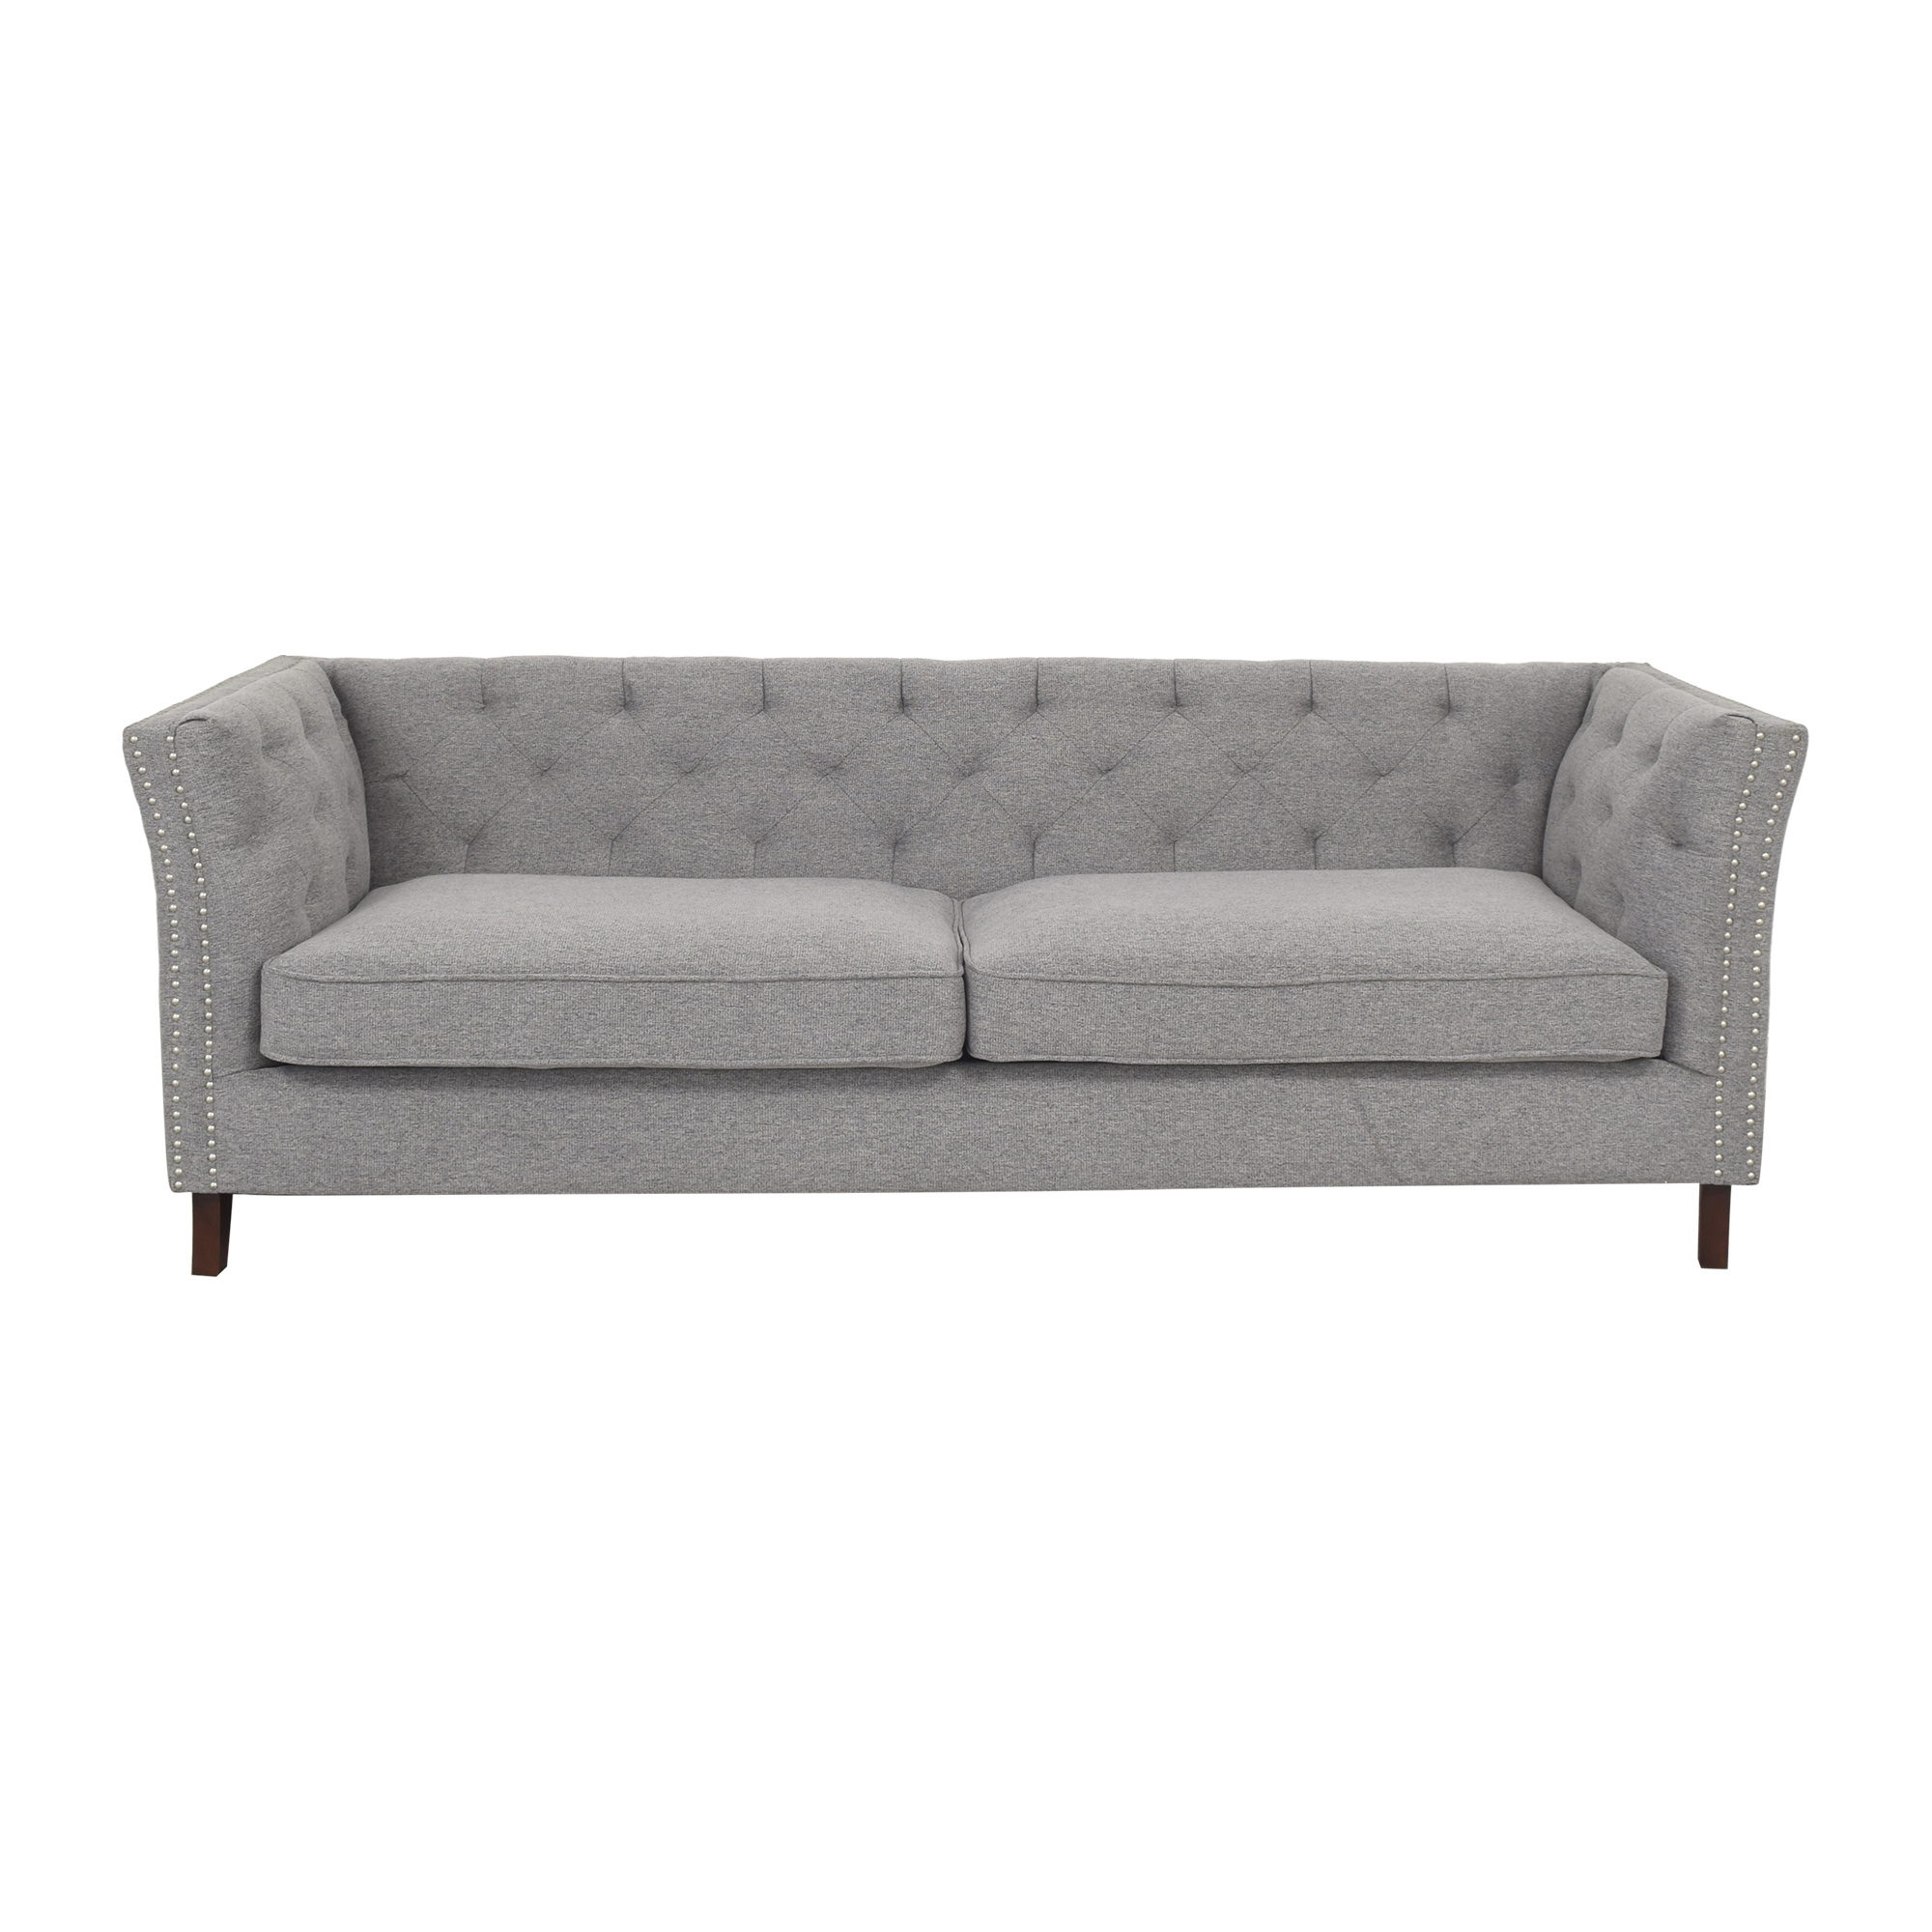 shop Wayfair Tufted Nailhead Trim Sofa Wayfair Sofas